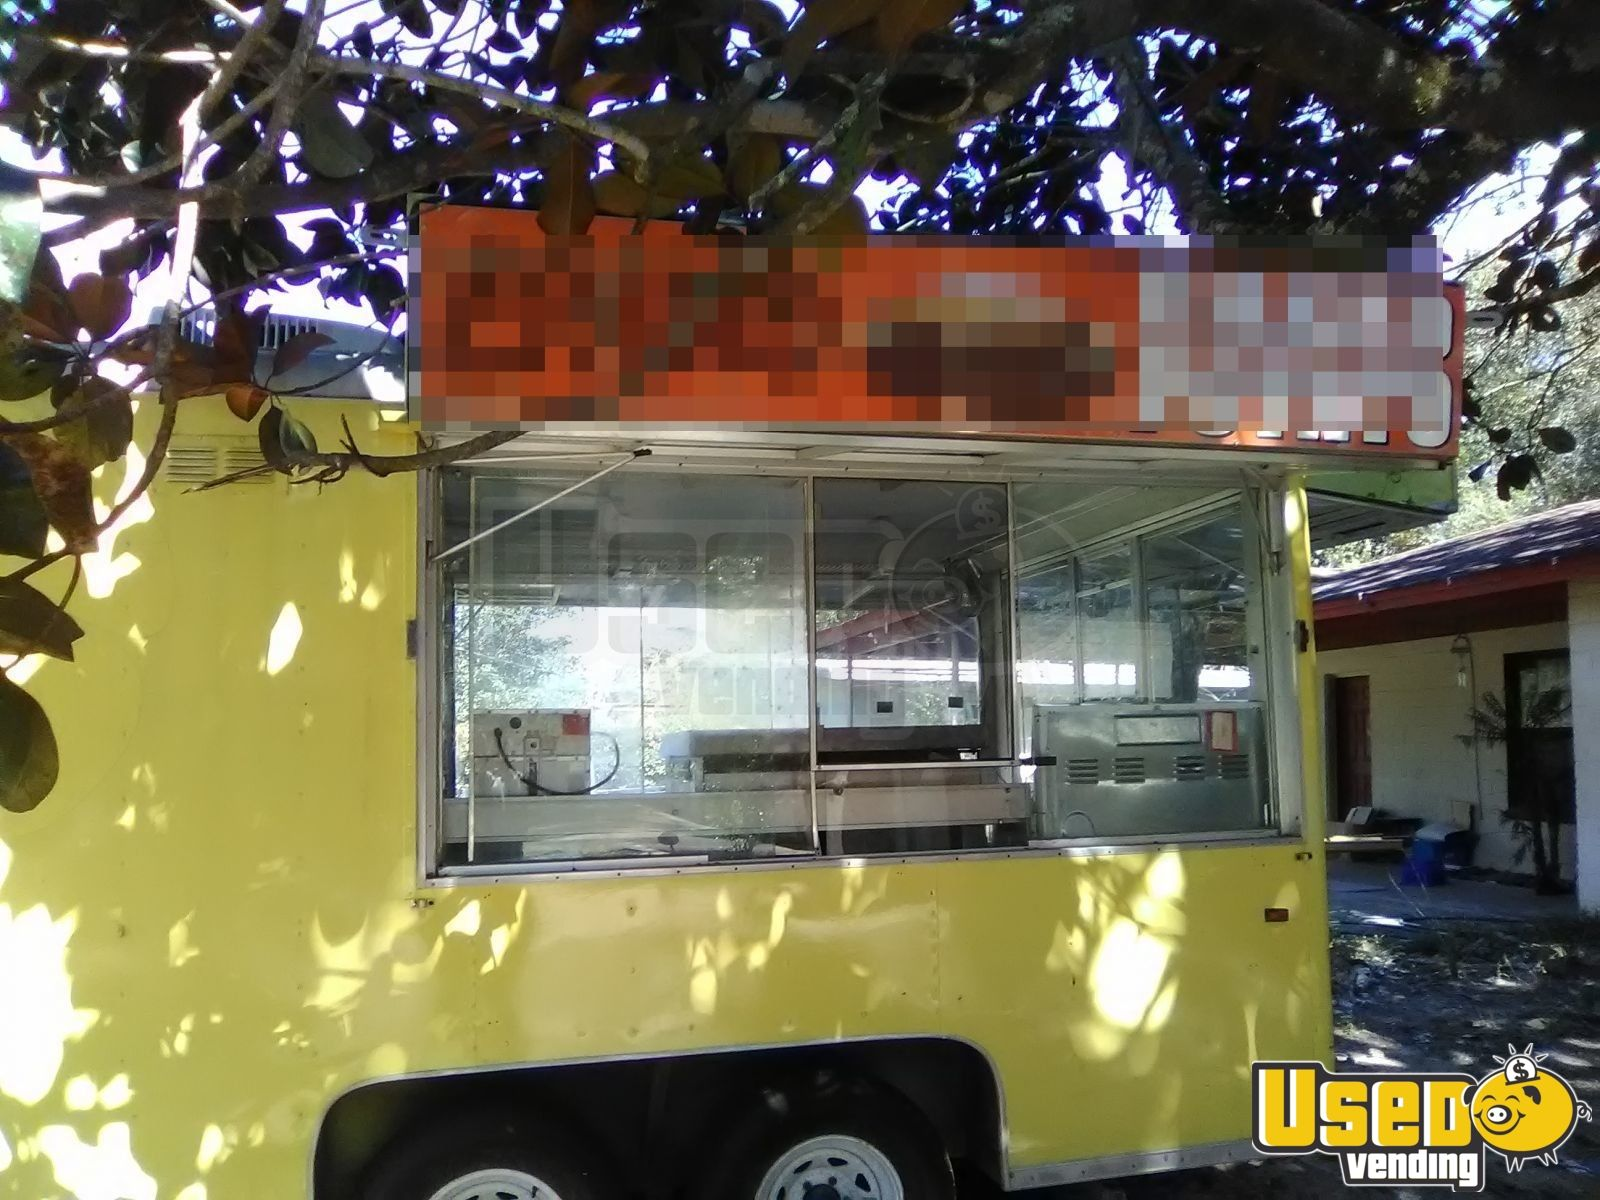 Kitchen Food Trailer Concession Window Florida for Sale - 3